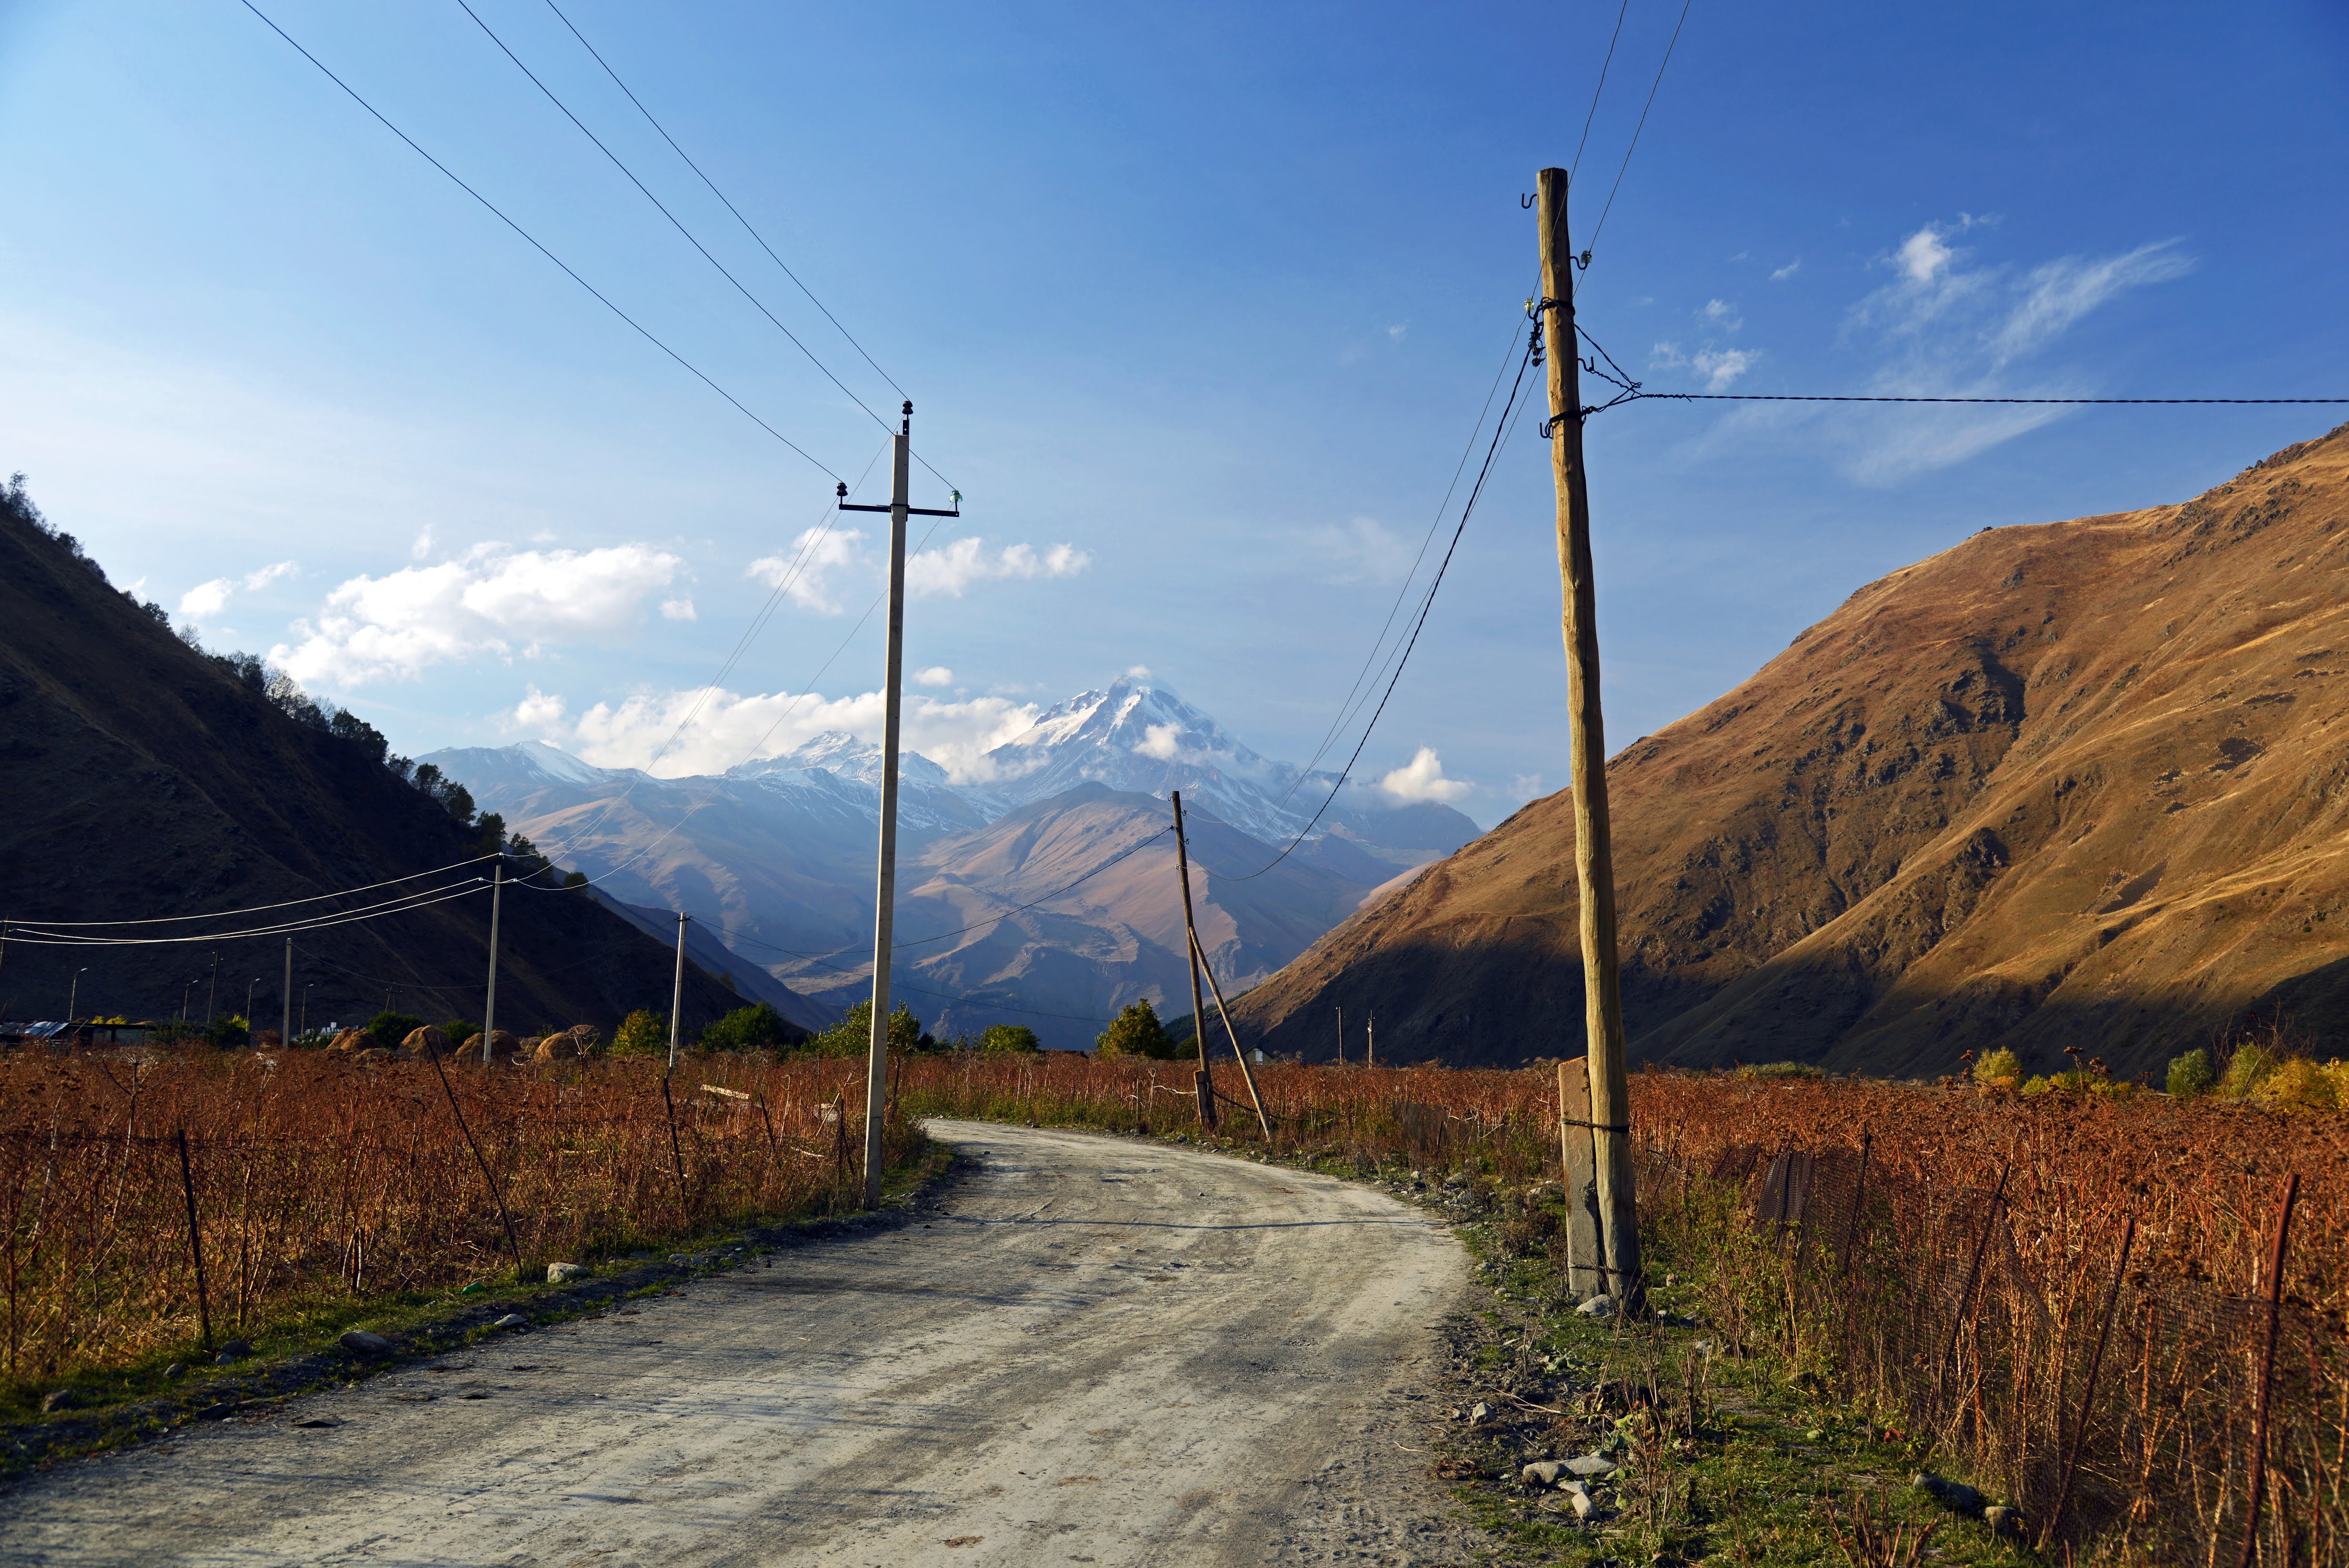 mountain-road-near-kazbek-mount-5047-m-georgia--russia-border_27386757324_o